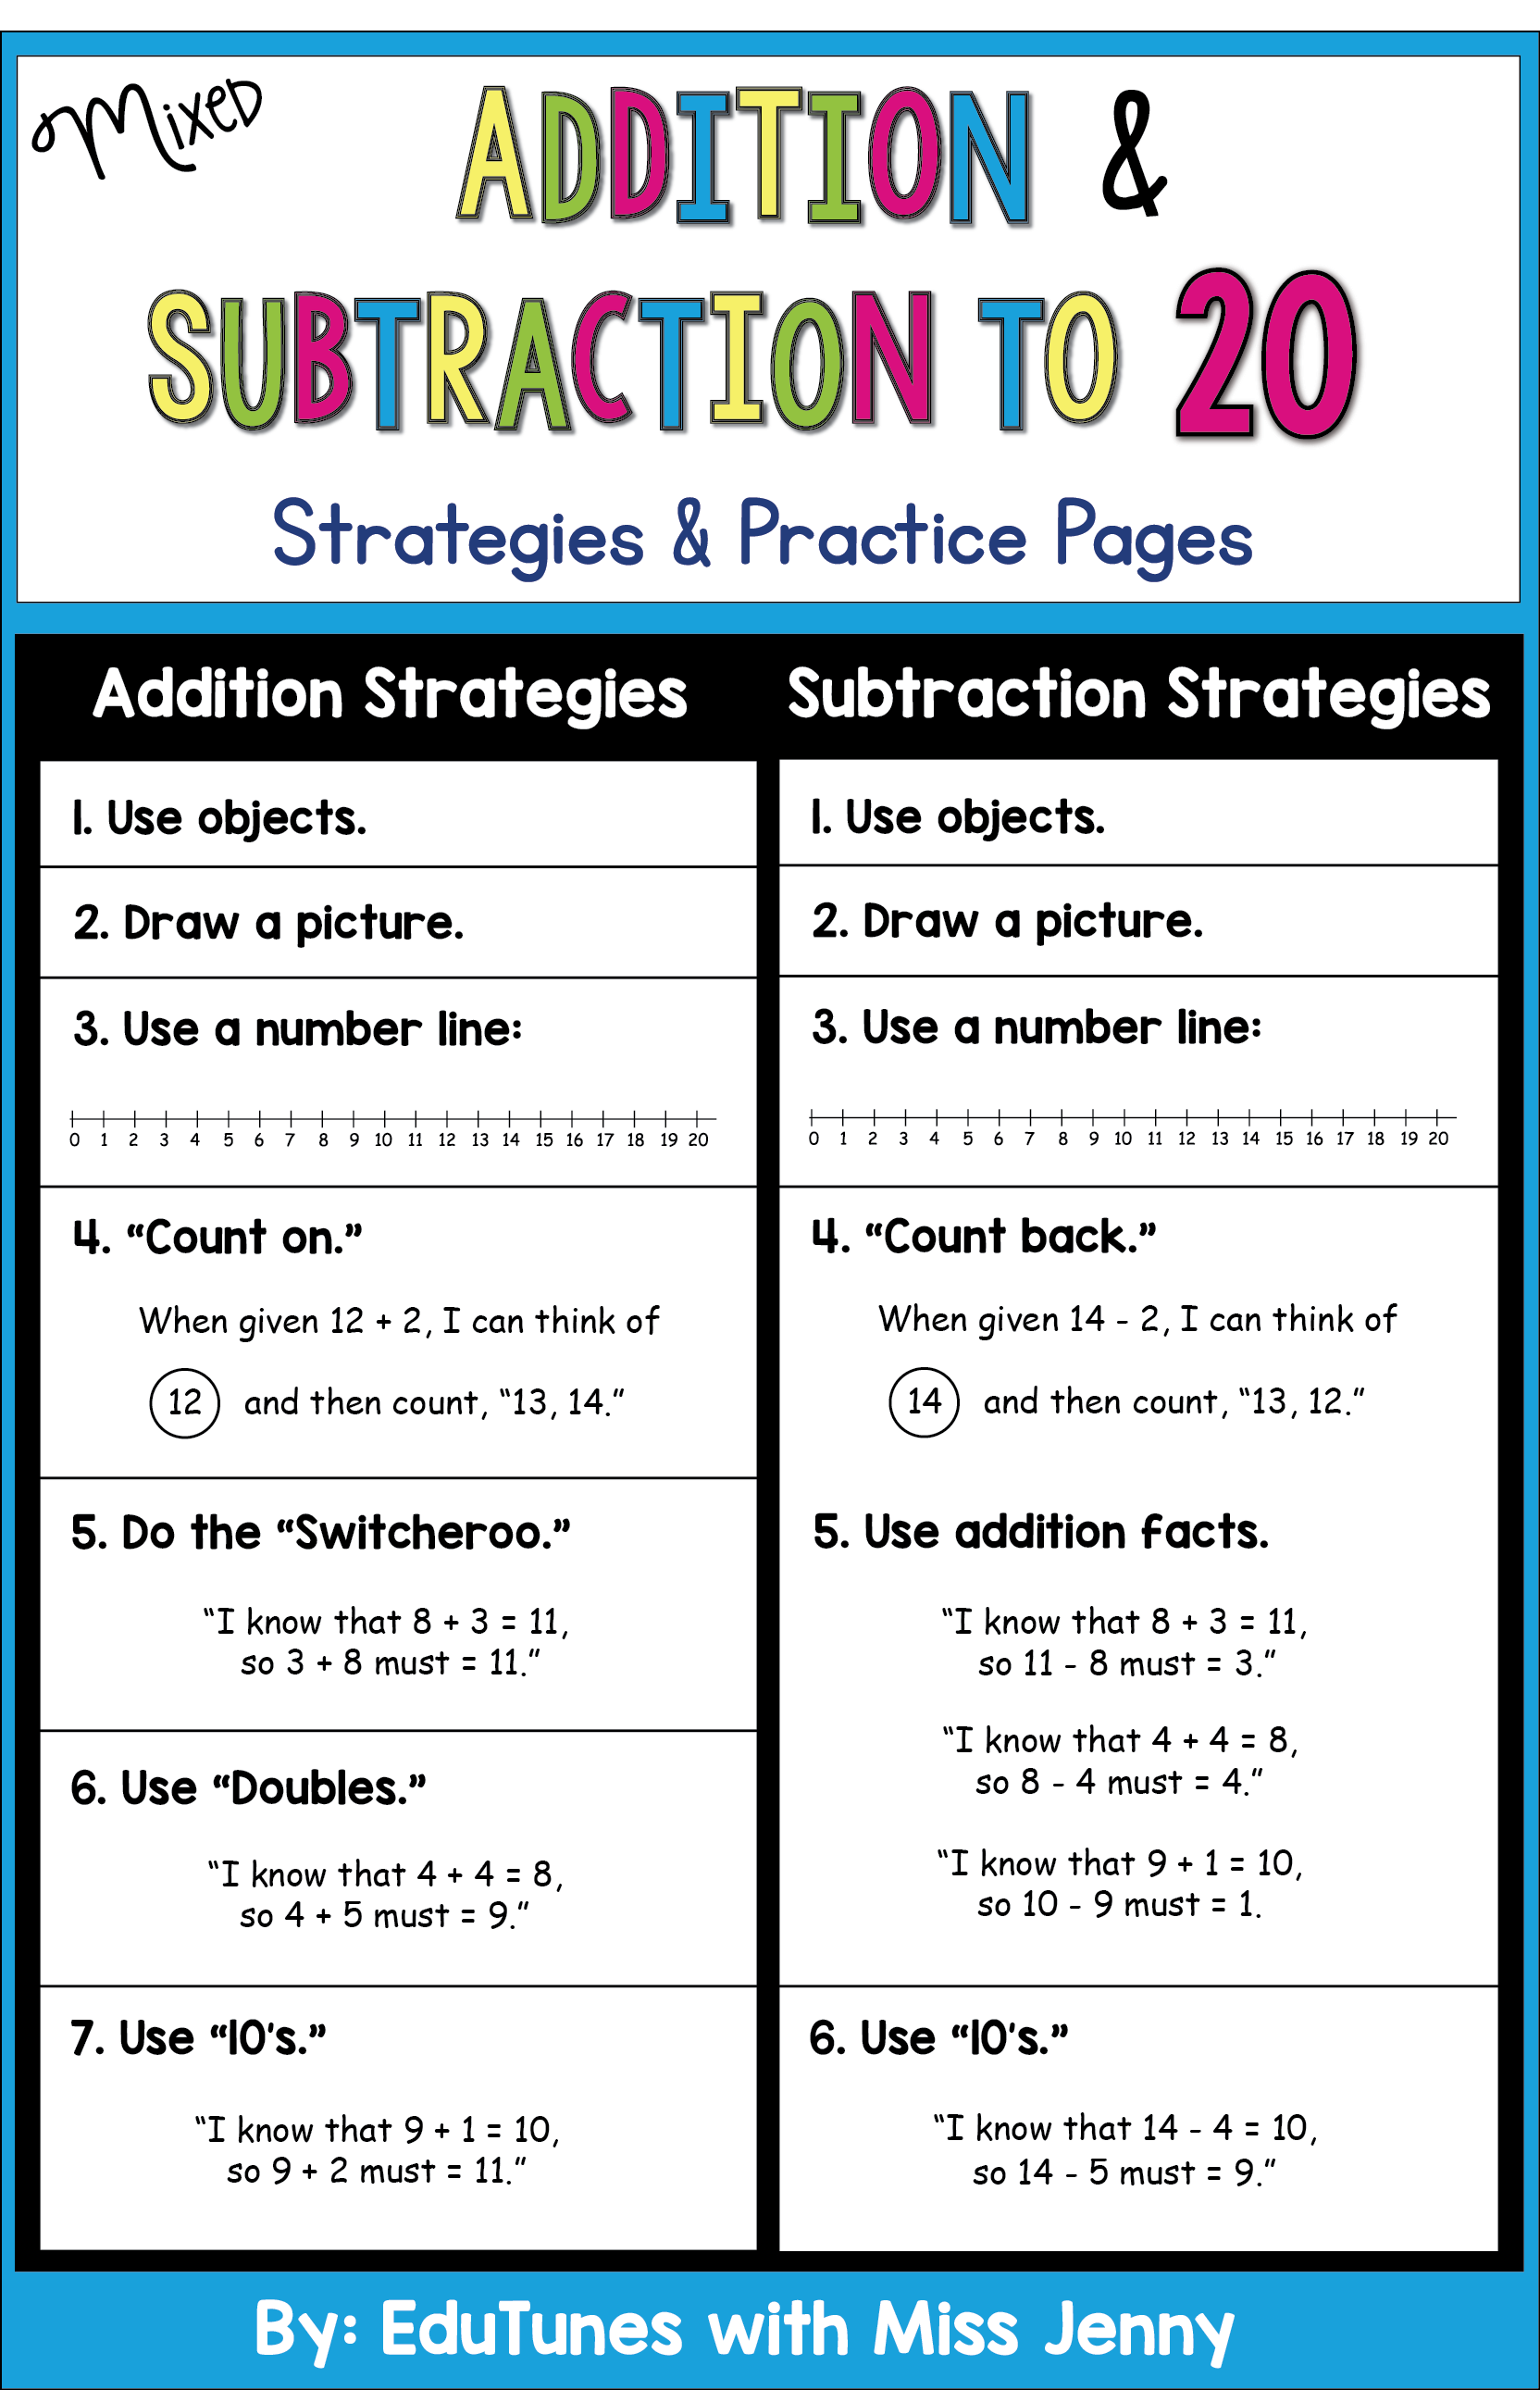 Addition And Subtraction Within 20 Strategies And Worksheets Addition And Subtraction Teaching Mathematics Math Activities Elementary [ 2582 x 1664 Pixel ]